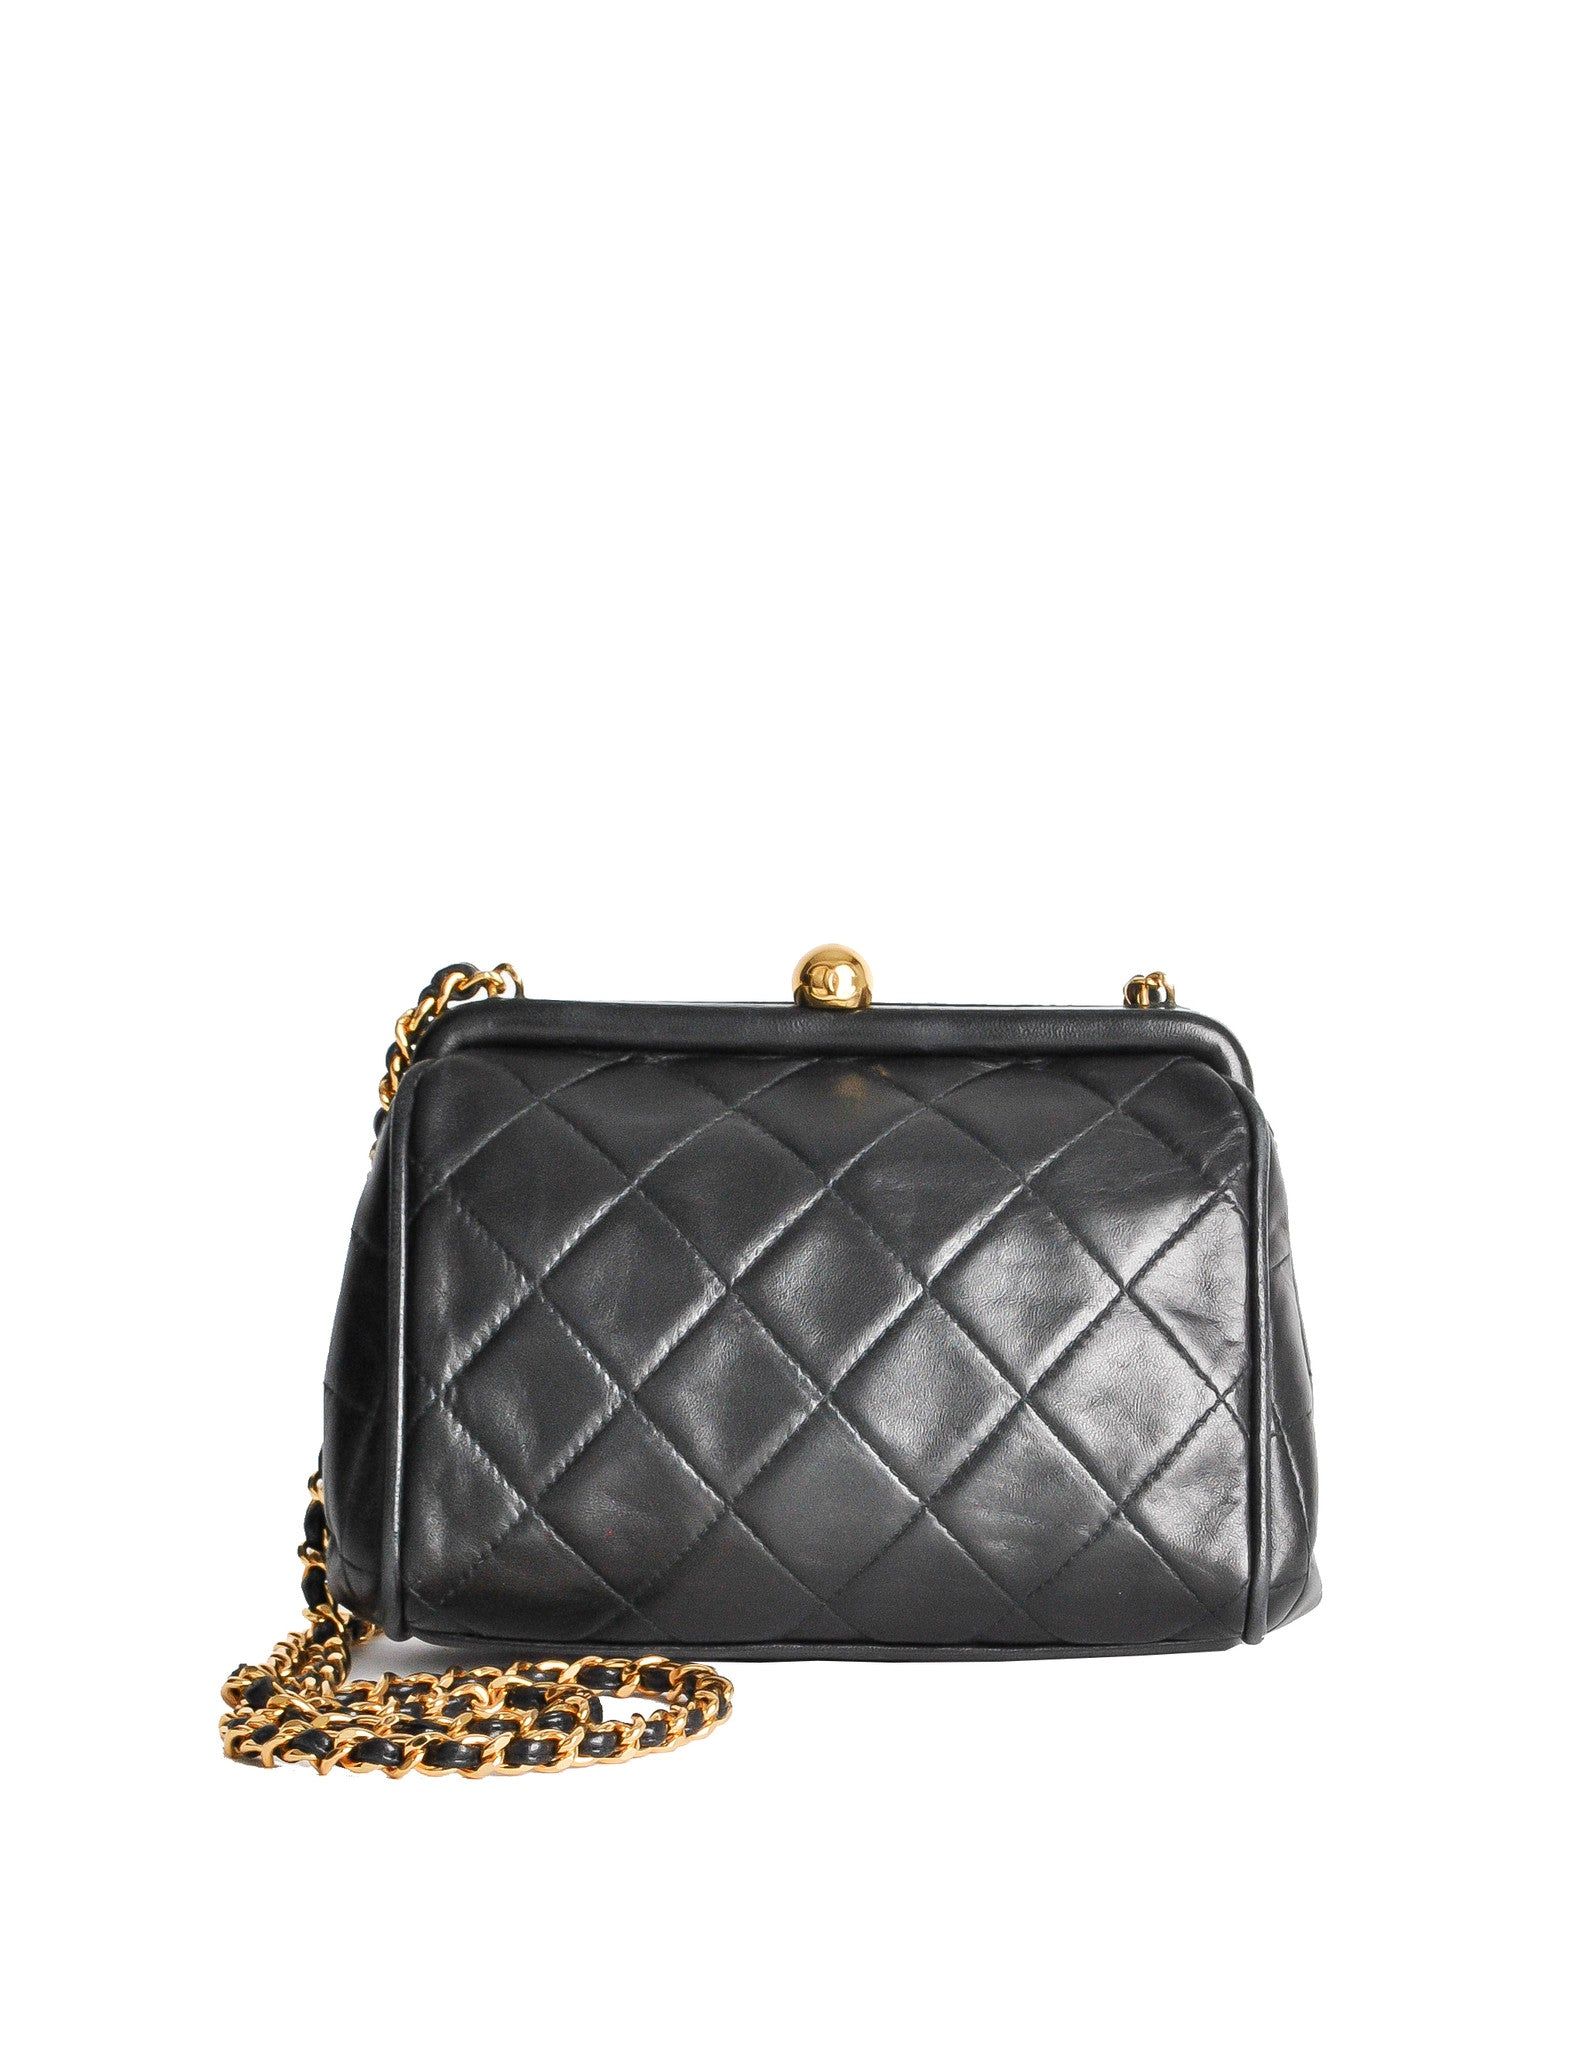 Chanel Vintage Black Quilted Crossbody Bag - Amarcord Vintage Fashion  - 1